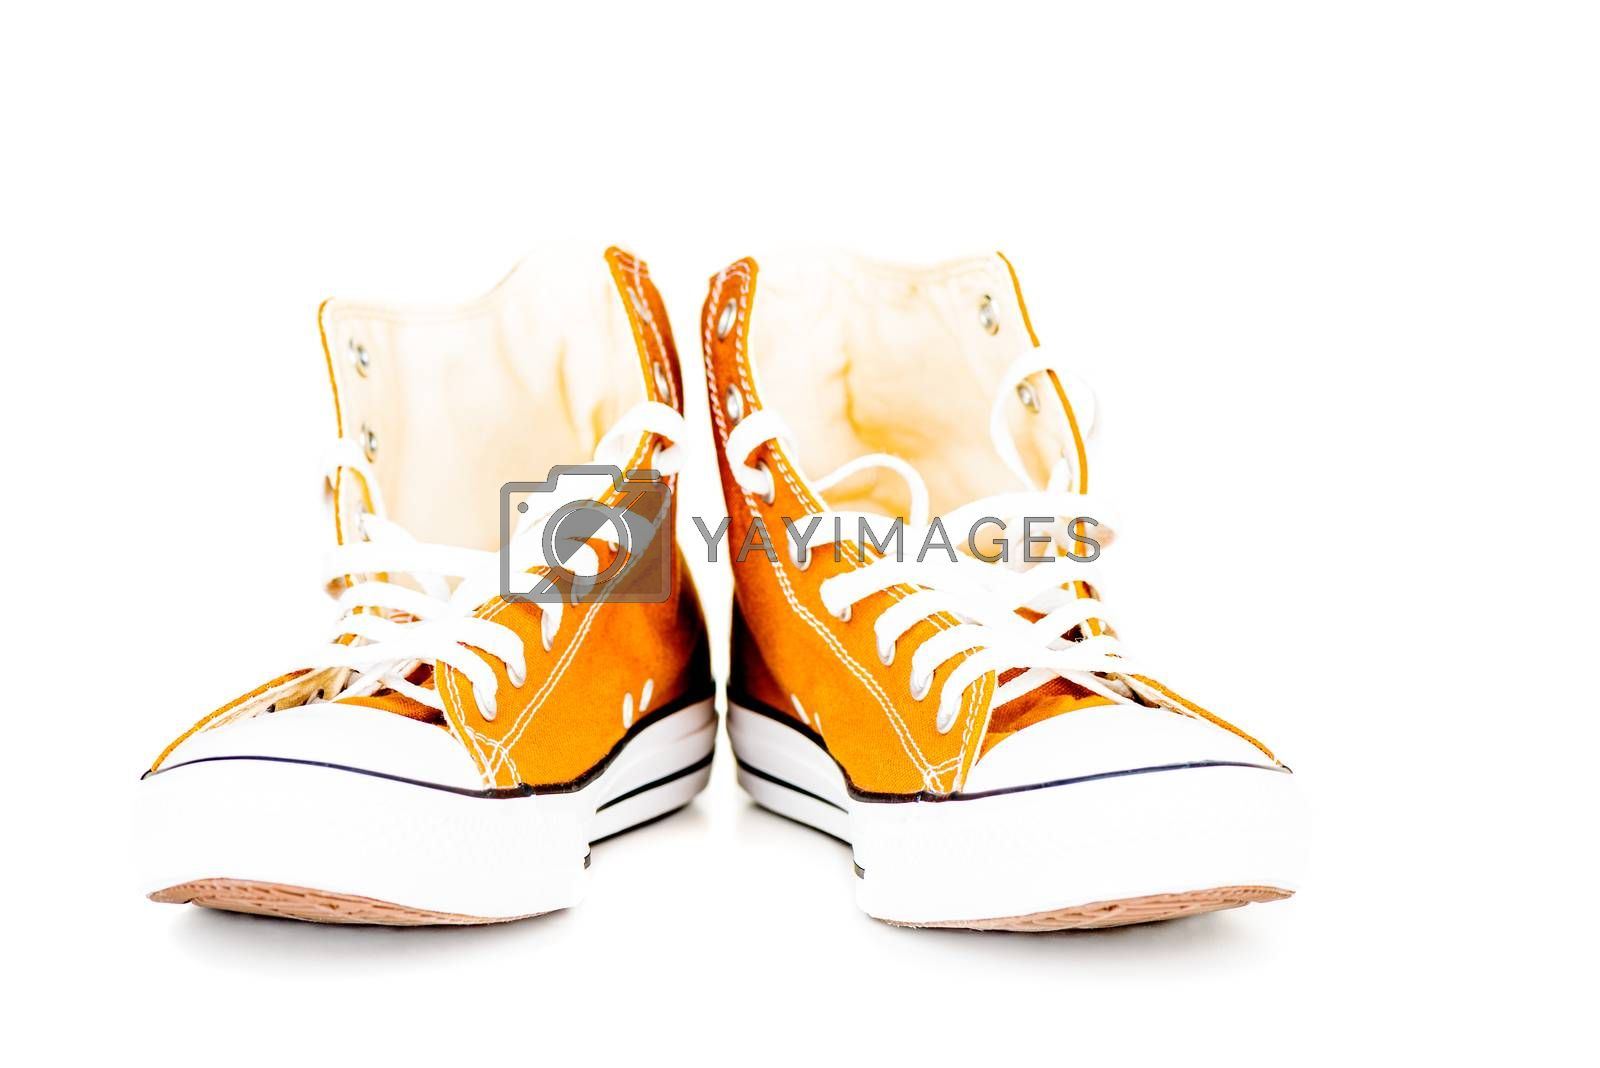 Pair of sports shoes isolated on white background